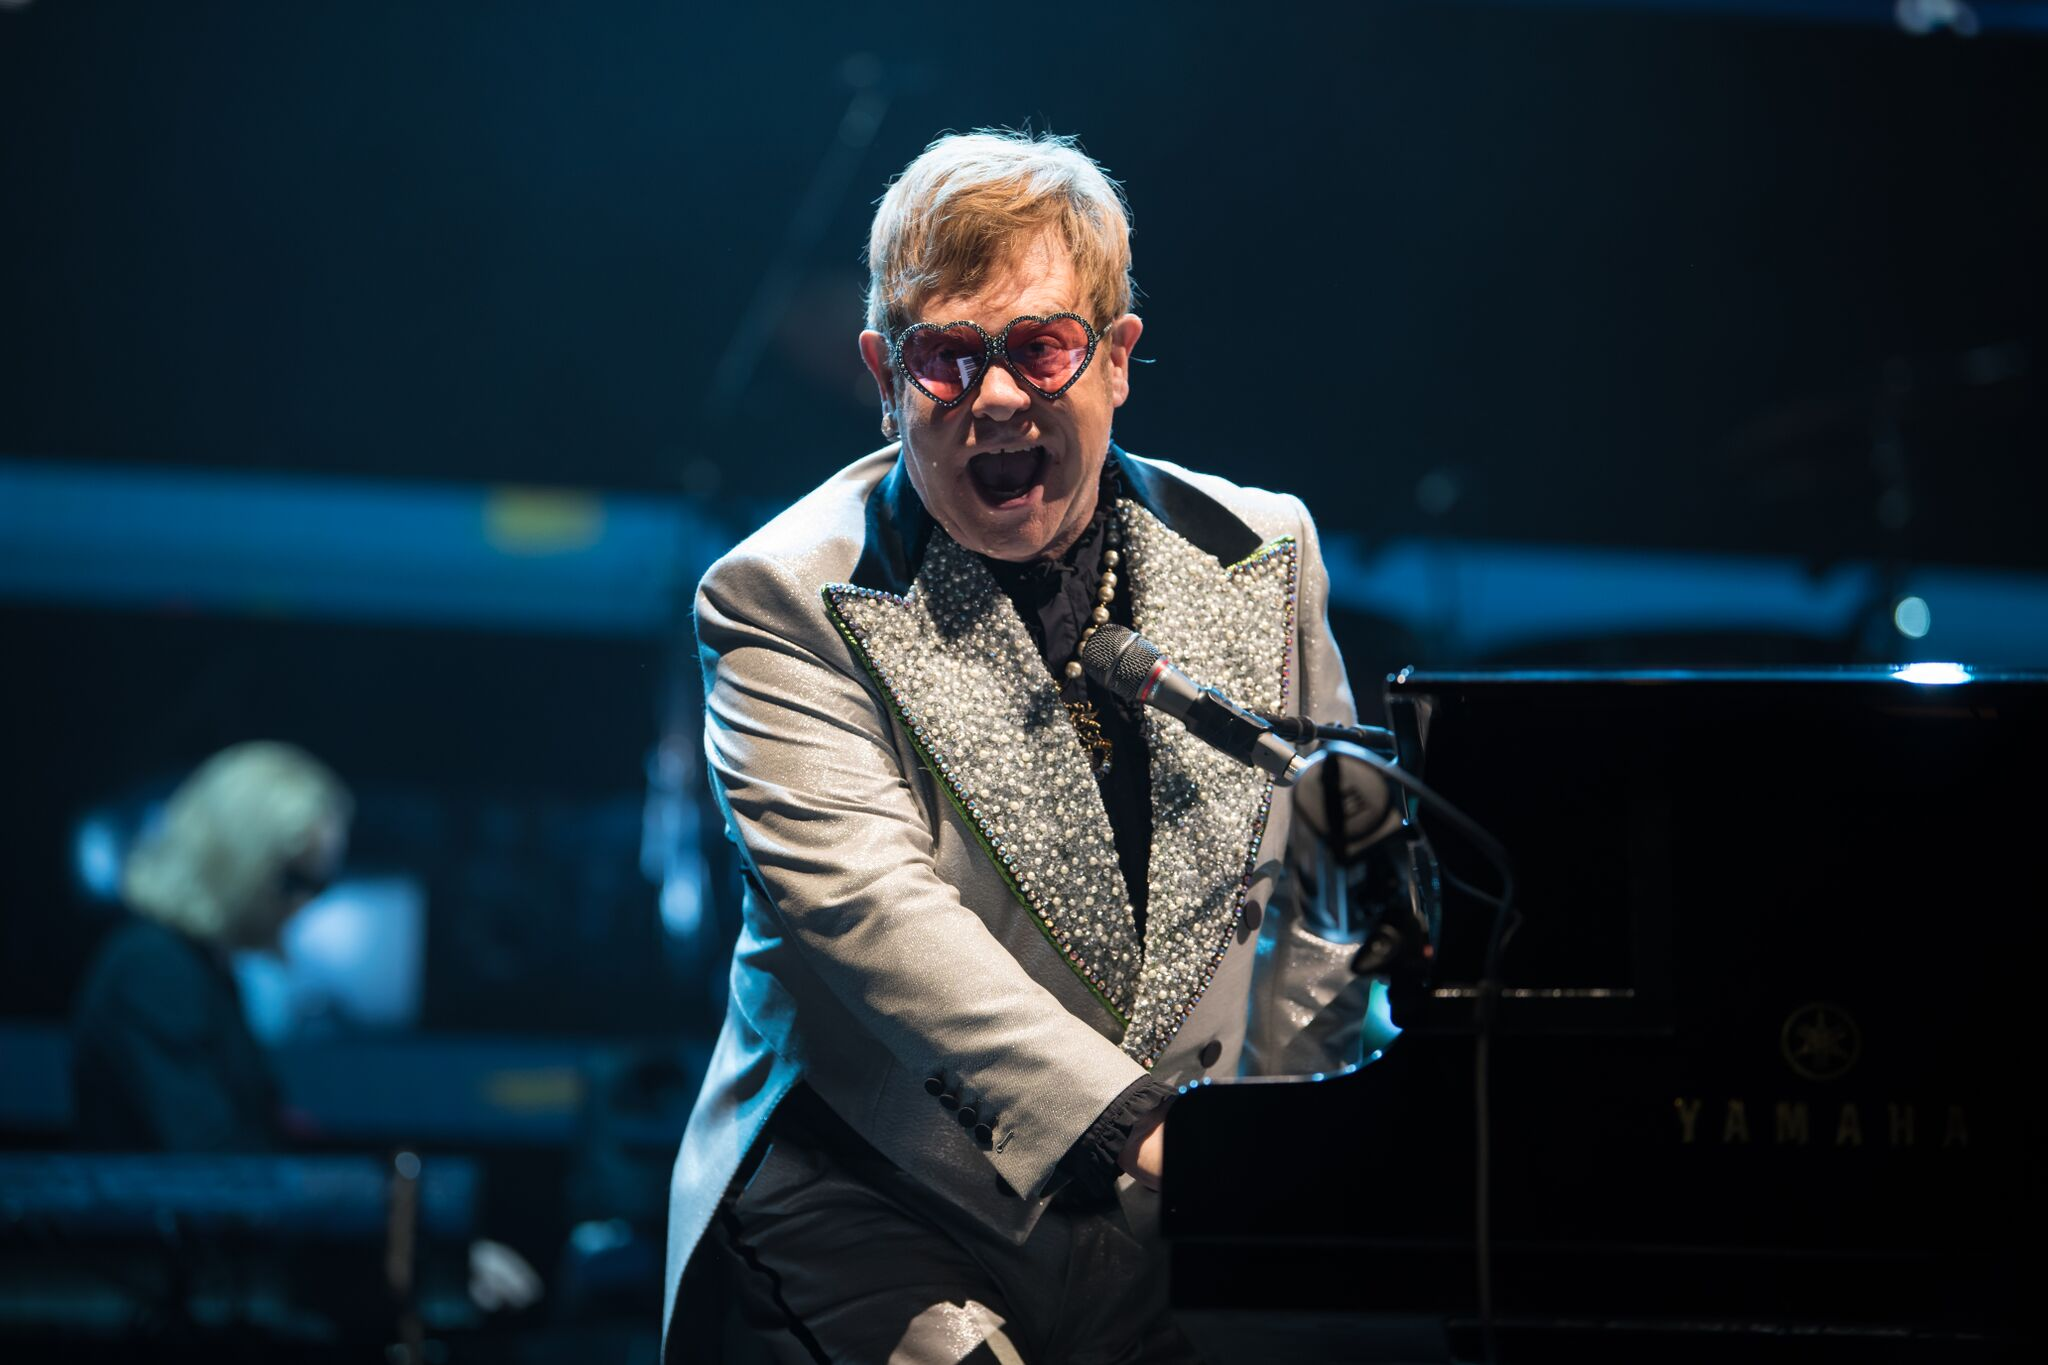 Sir Elton John is bringing his last ever live tour to Aberdeen